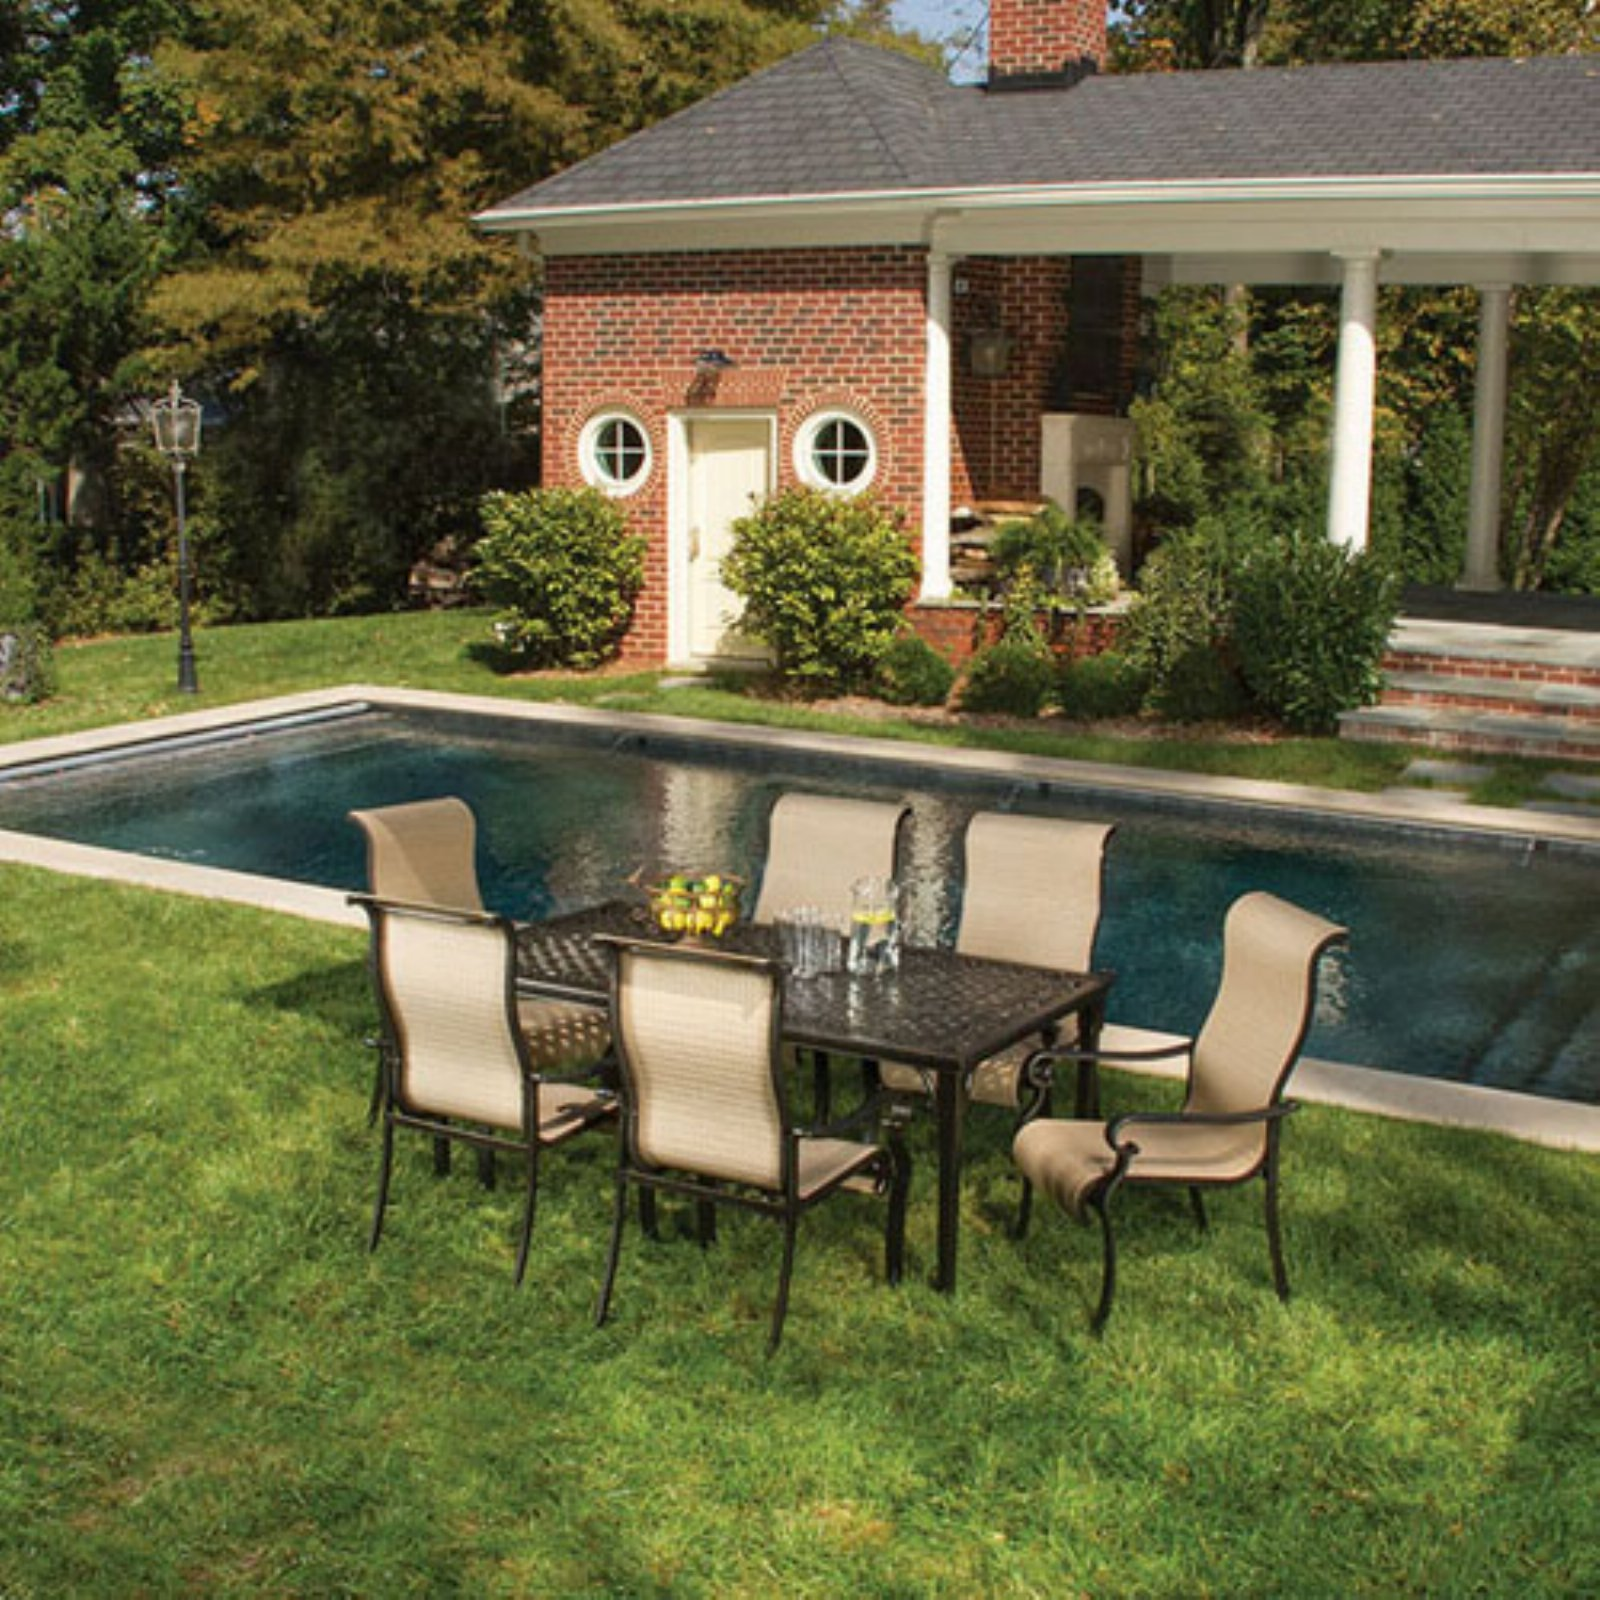 Hanover Outdoor Brigantine 7-Piece Dining Set with Glass-Top Table, Harvest Wheat/Espresso Bean